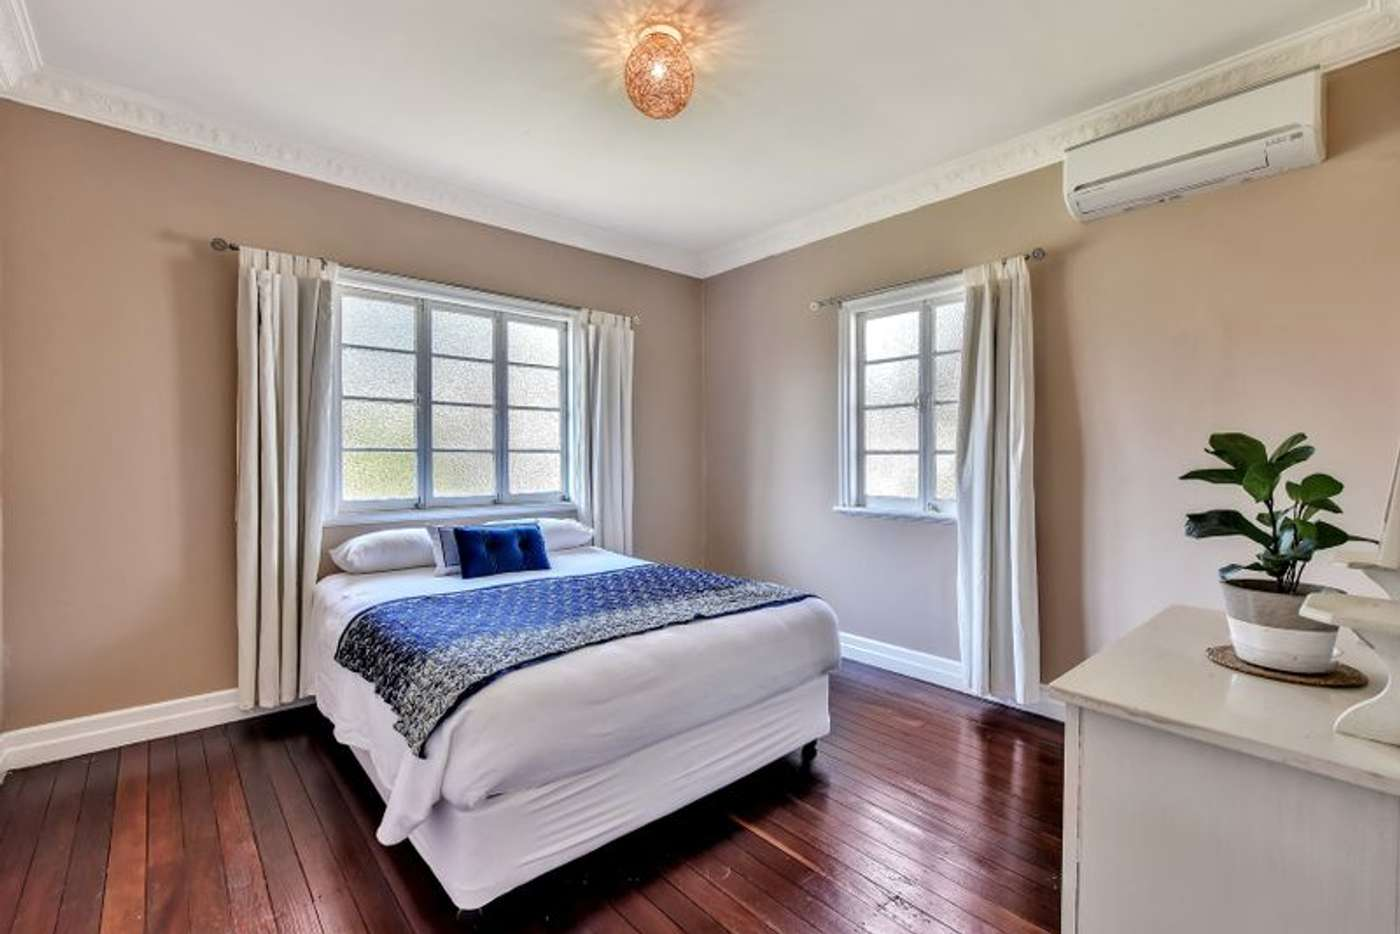 Sixth view of Homely house listing, 23 Vineyard Street, One Mile QLD 4305